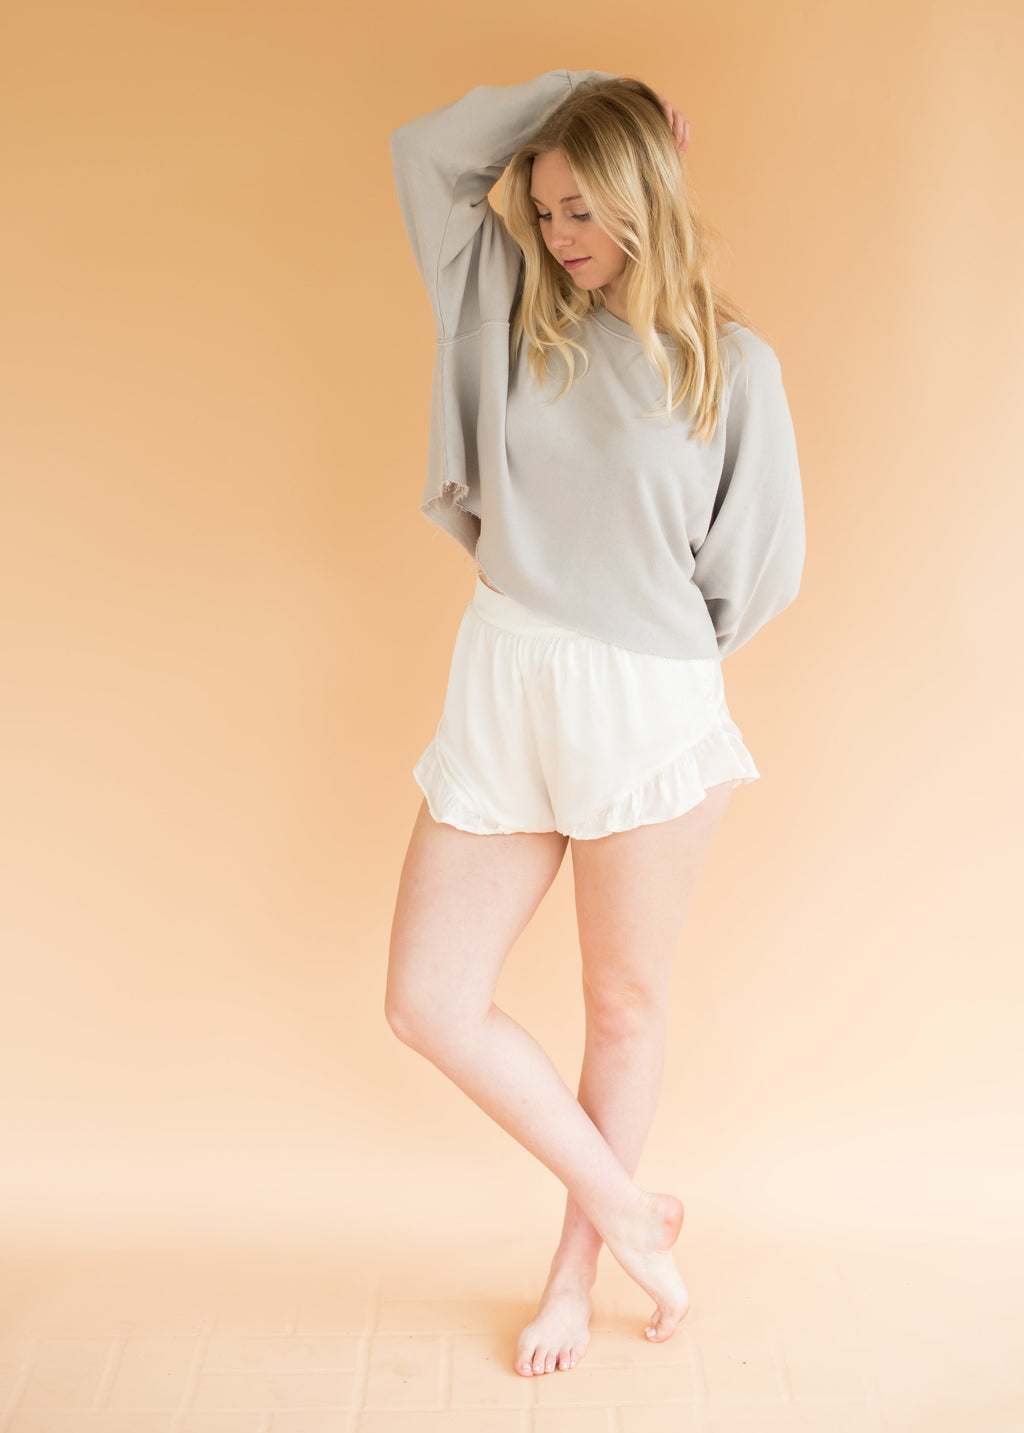 The Austin Bloomers - Women's White Silk Shorts